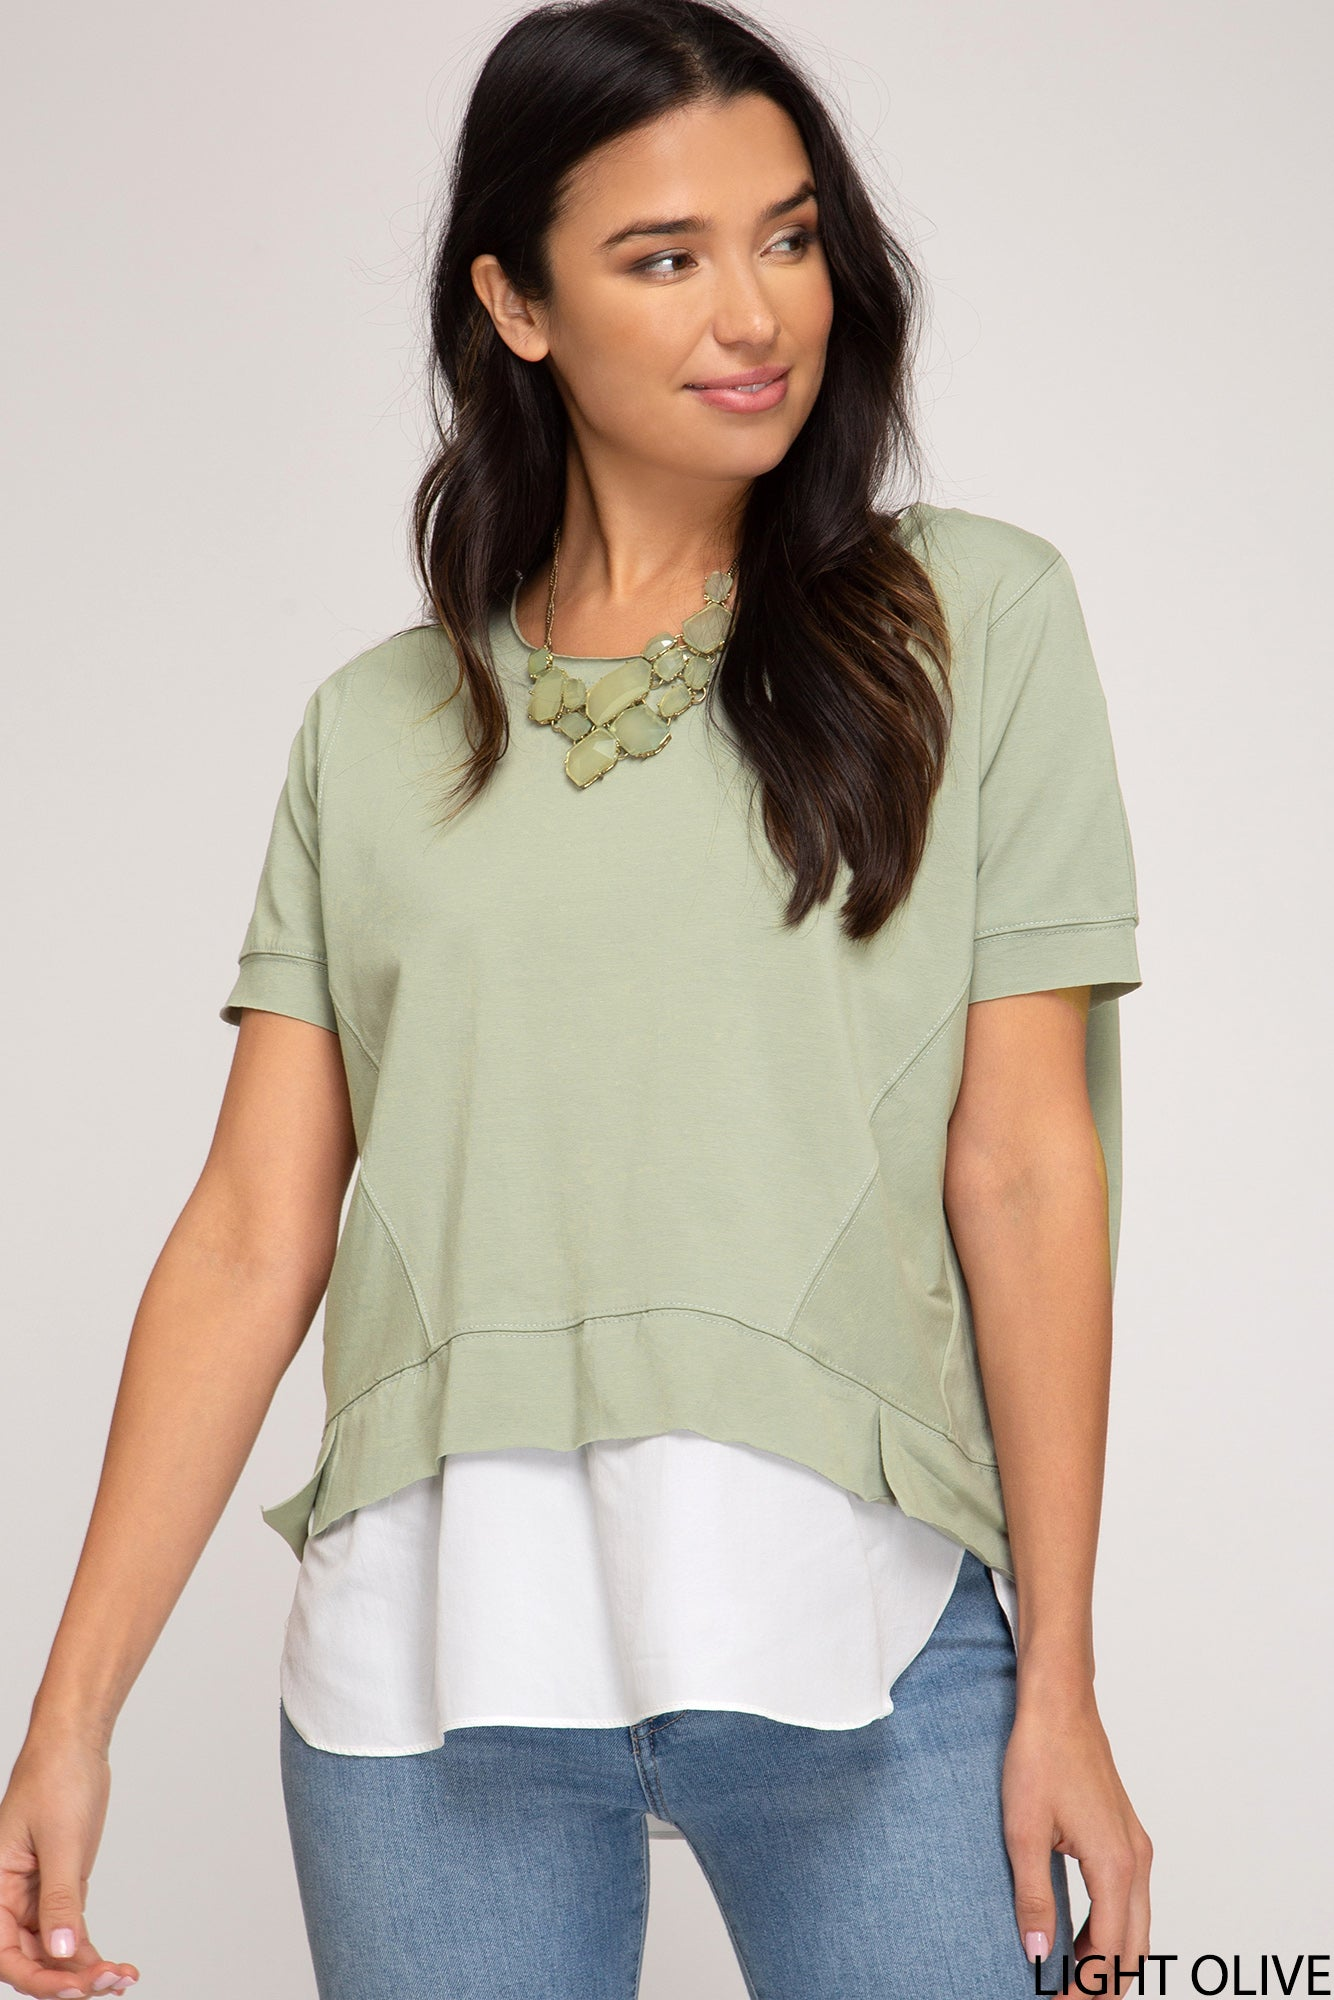 DOLMAN SLEEVE KNIT TOP WITH CONTRAST WOVEN SHIRT HEM